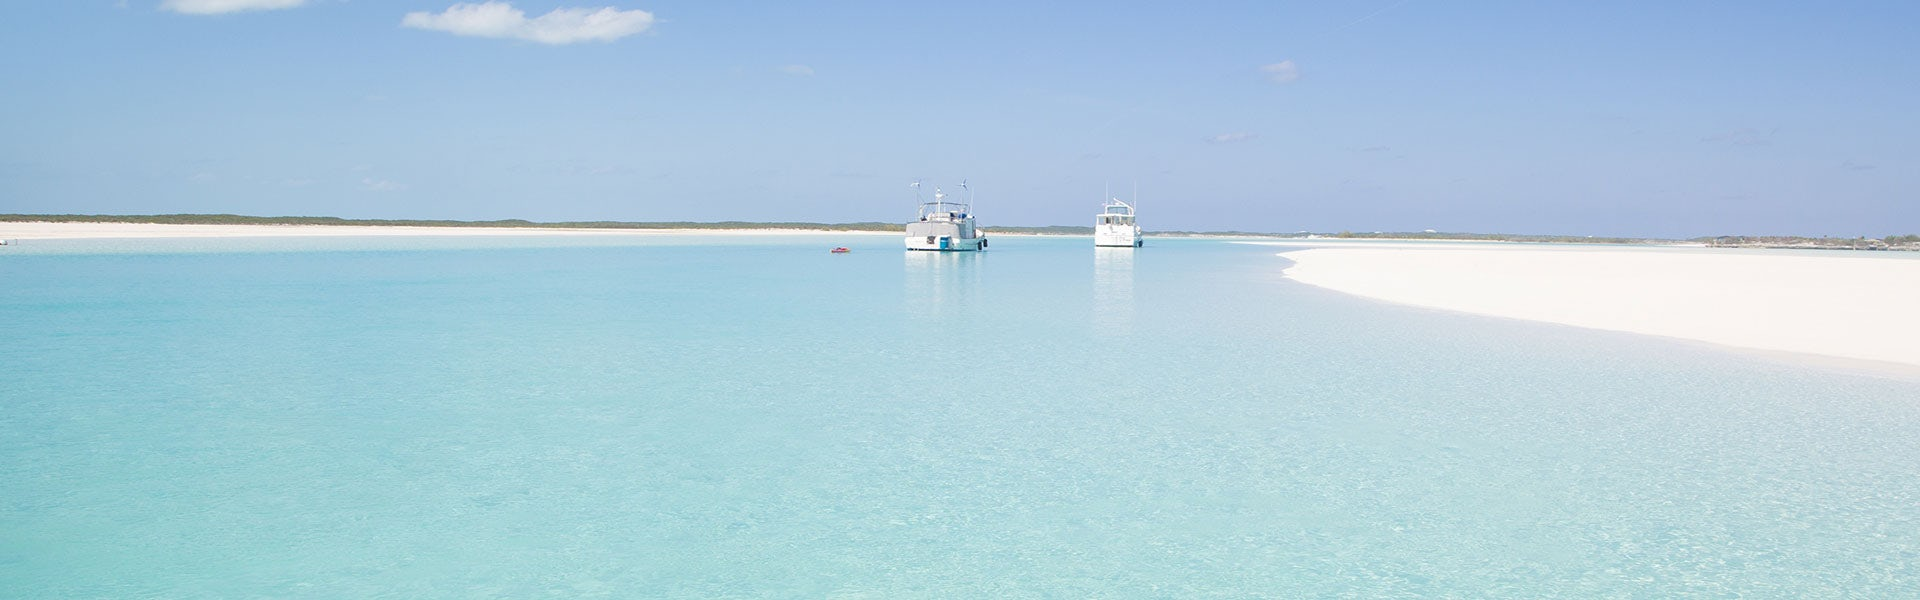 15 Tage Bahamas in Sandals Hotels